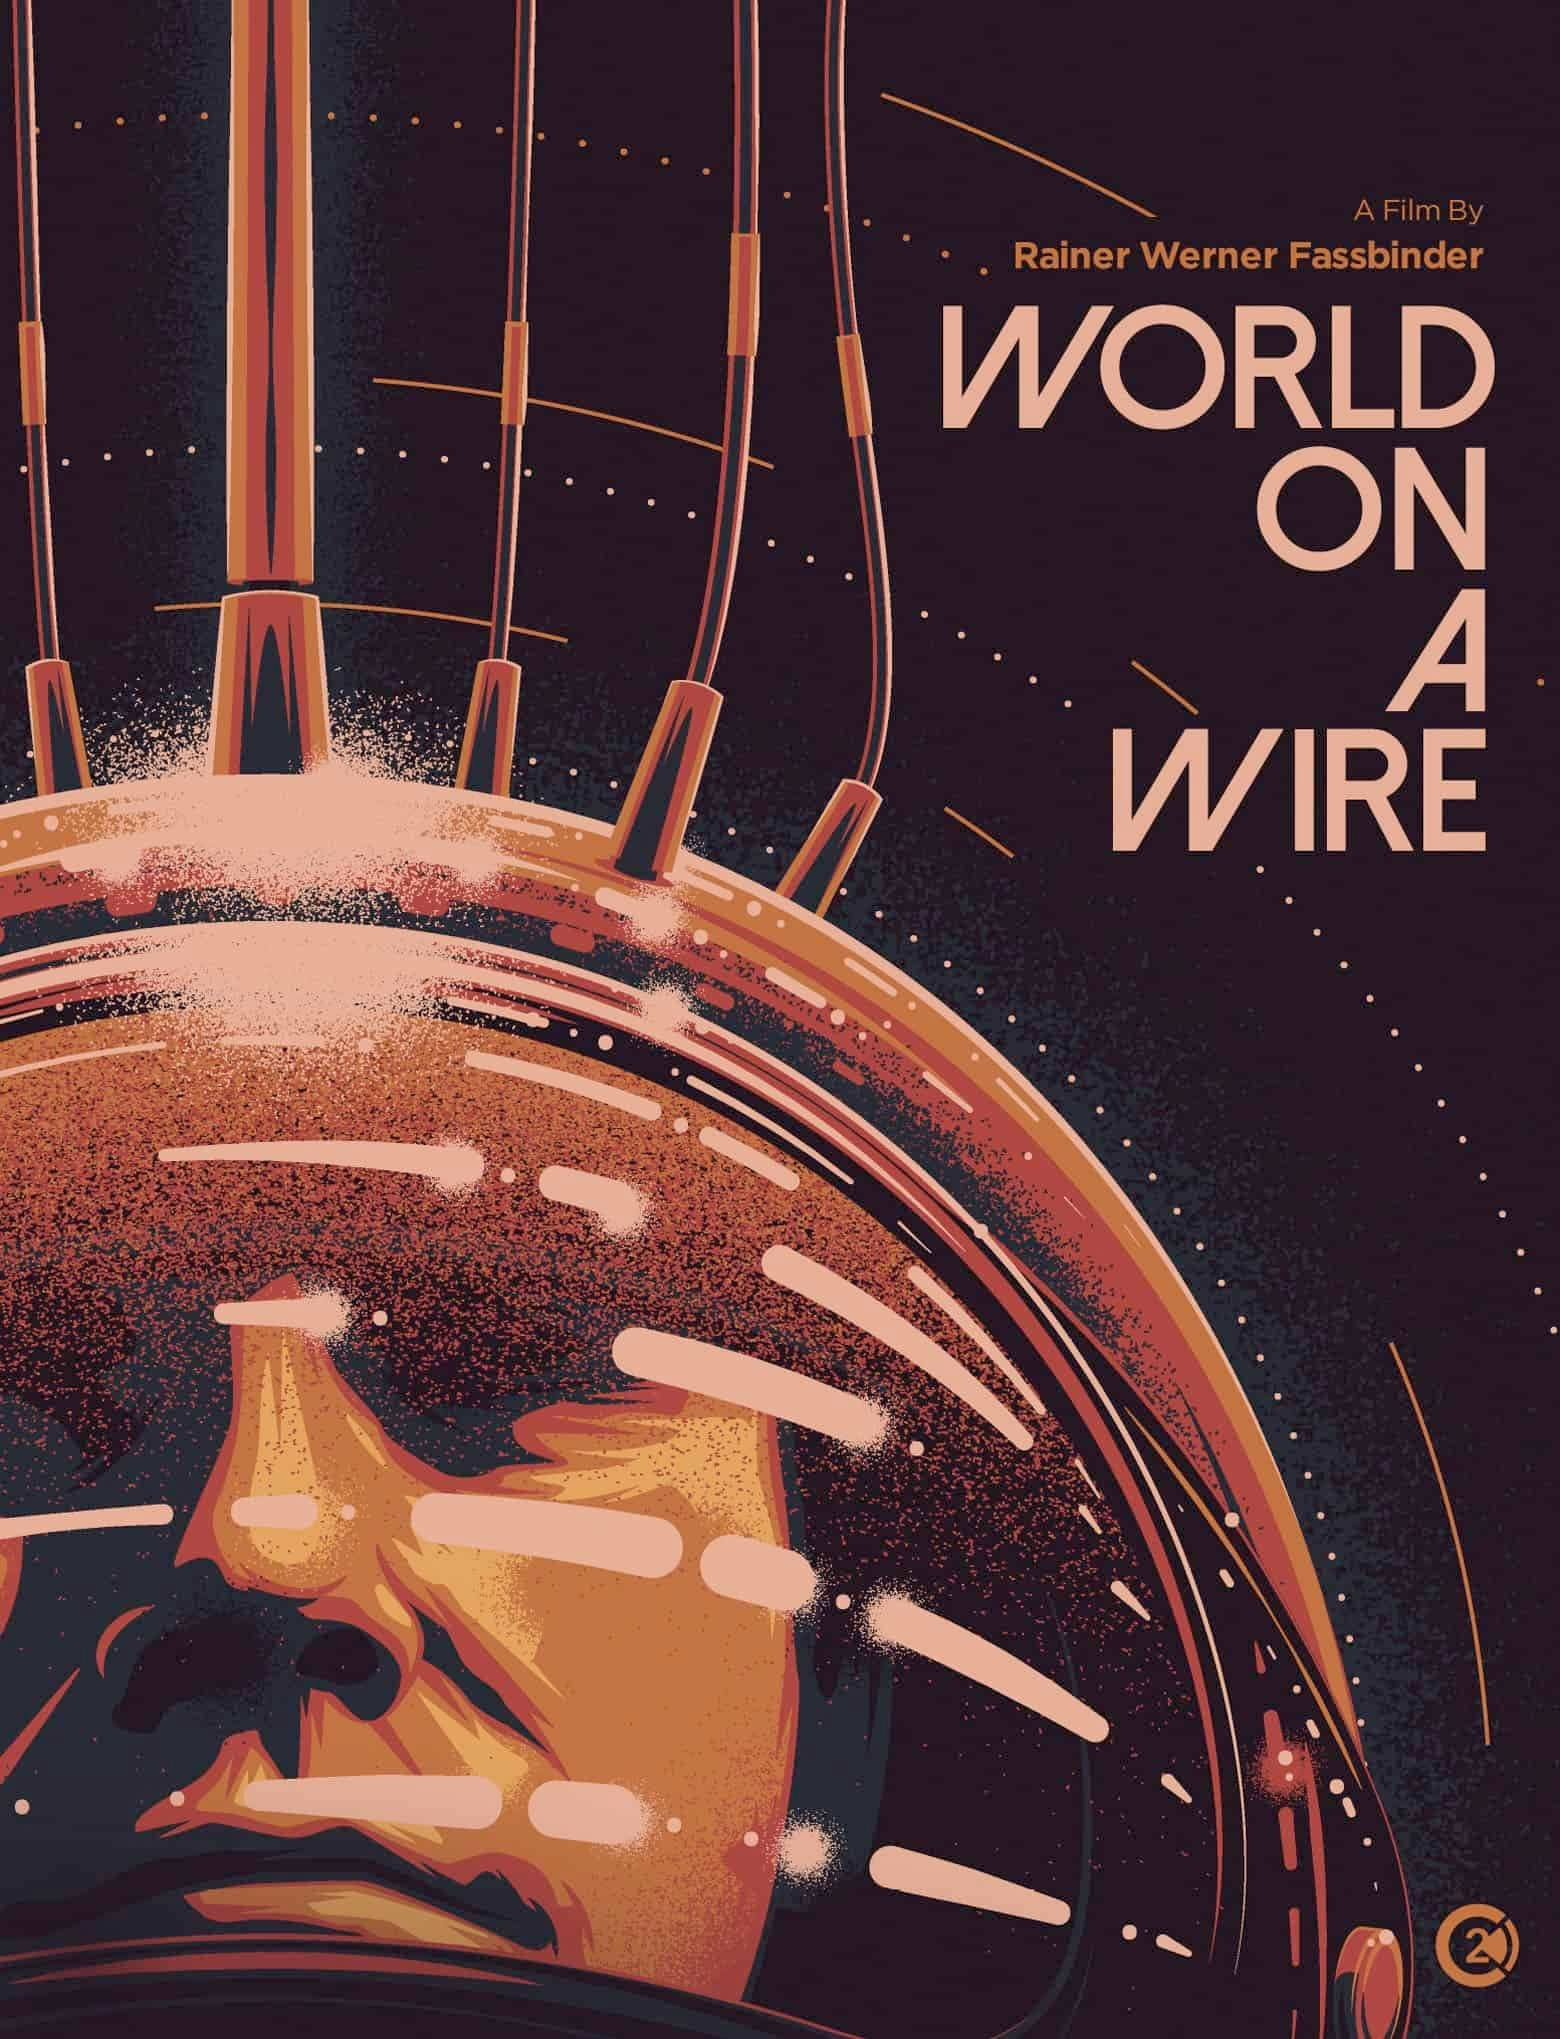 World on a wire Poster.jpg